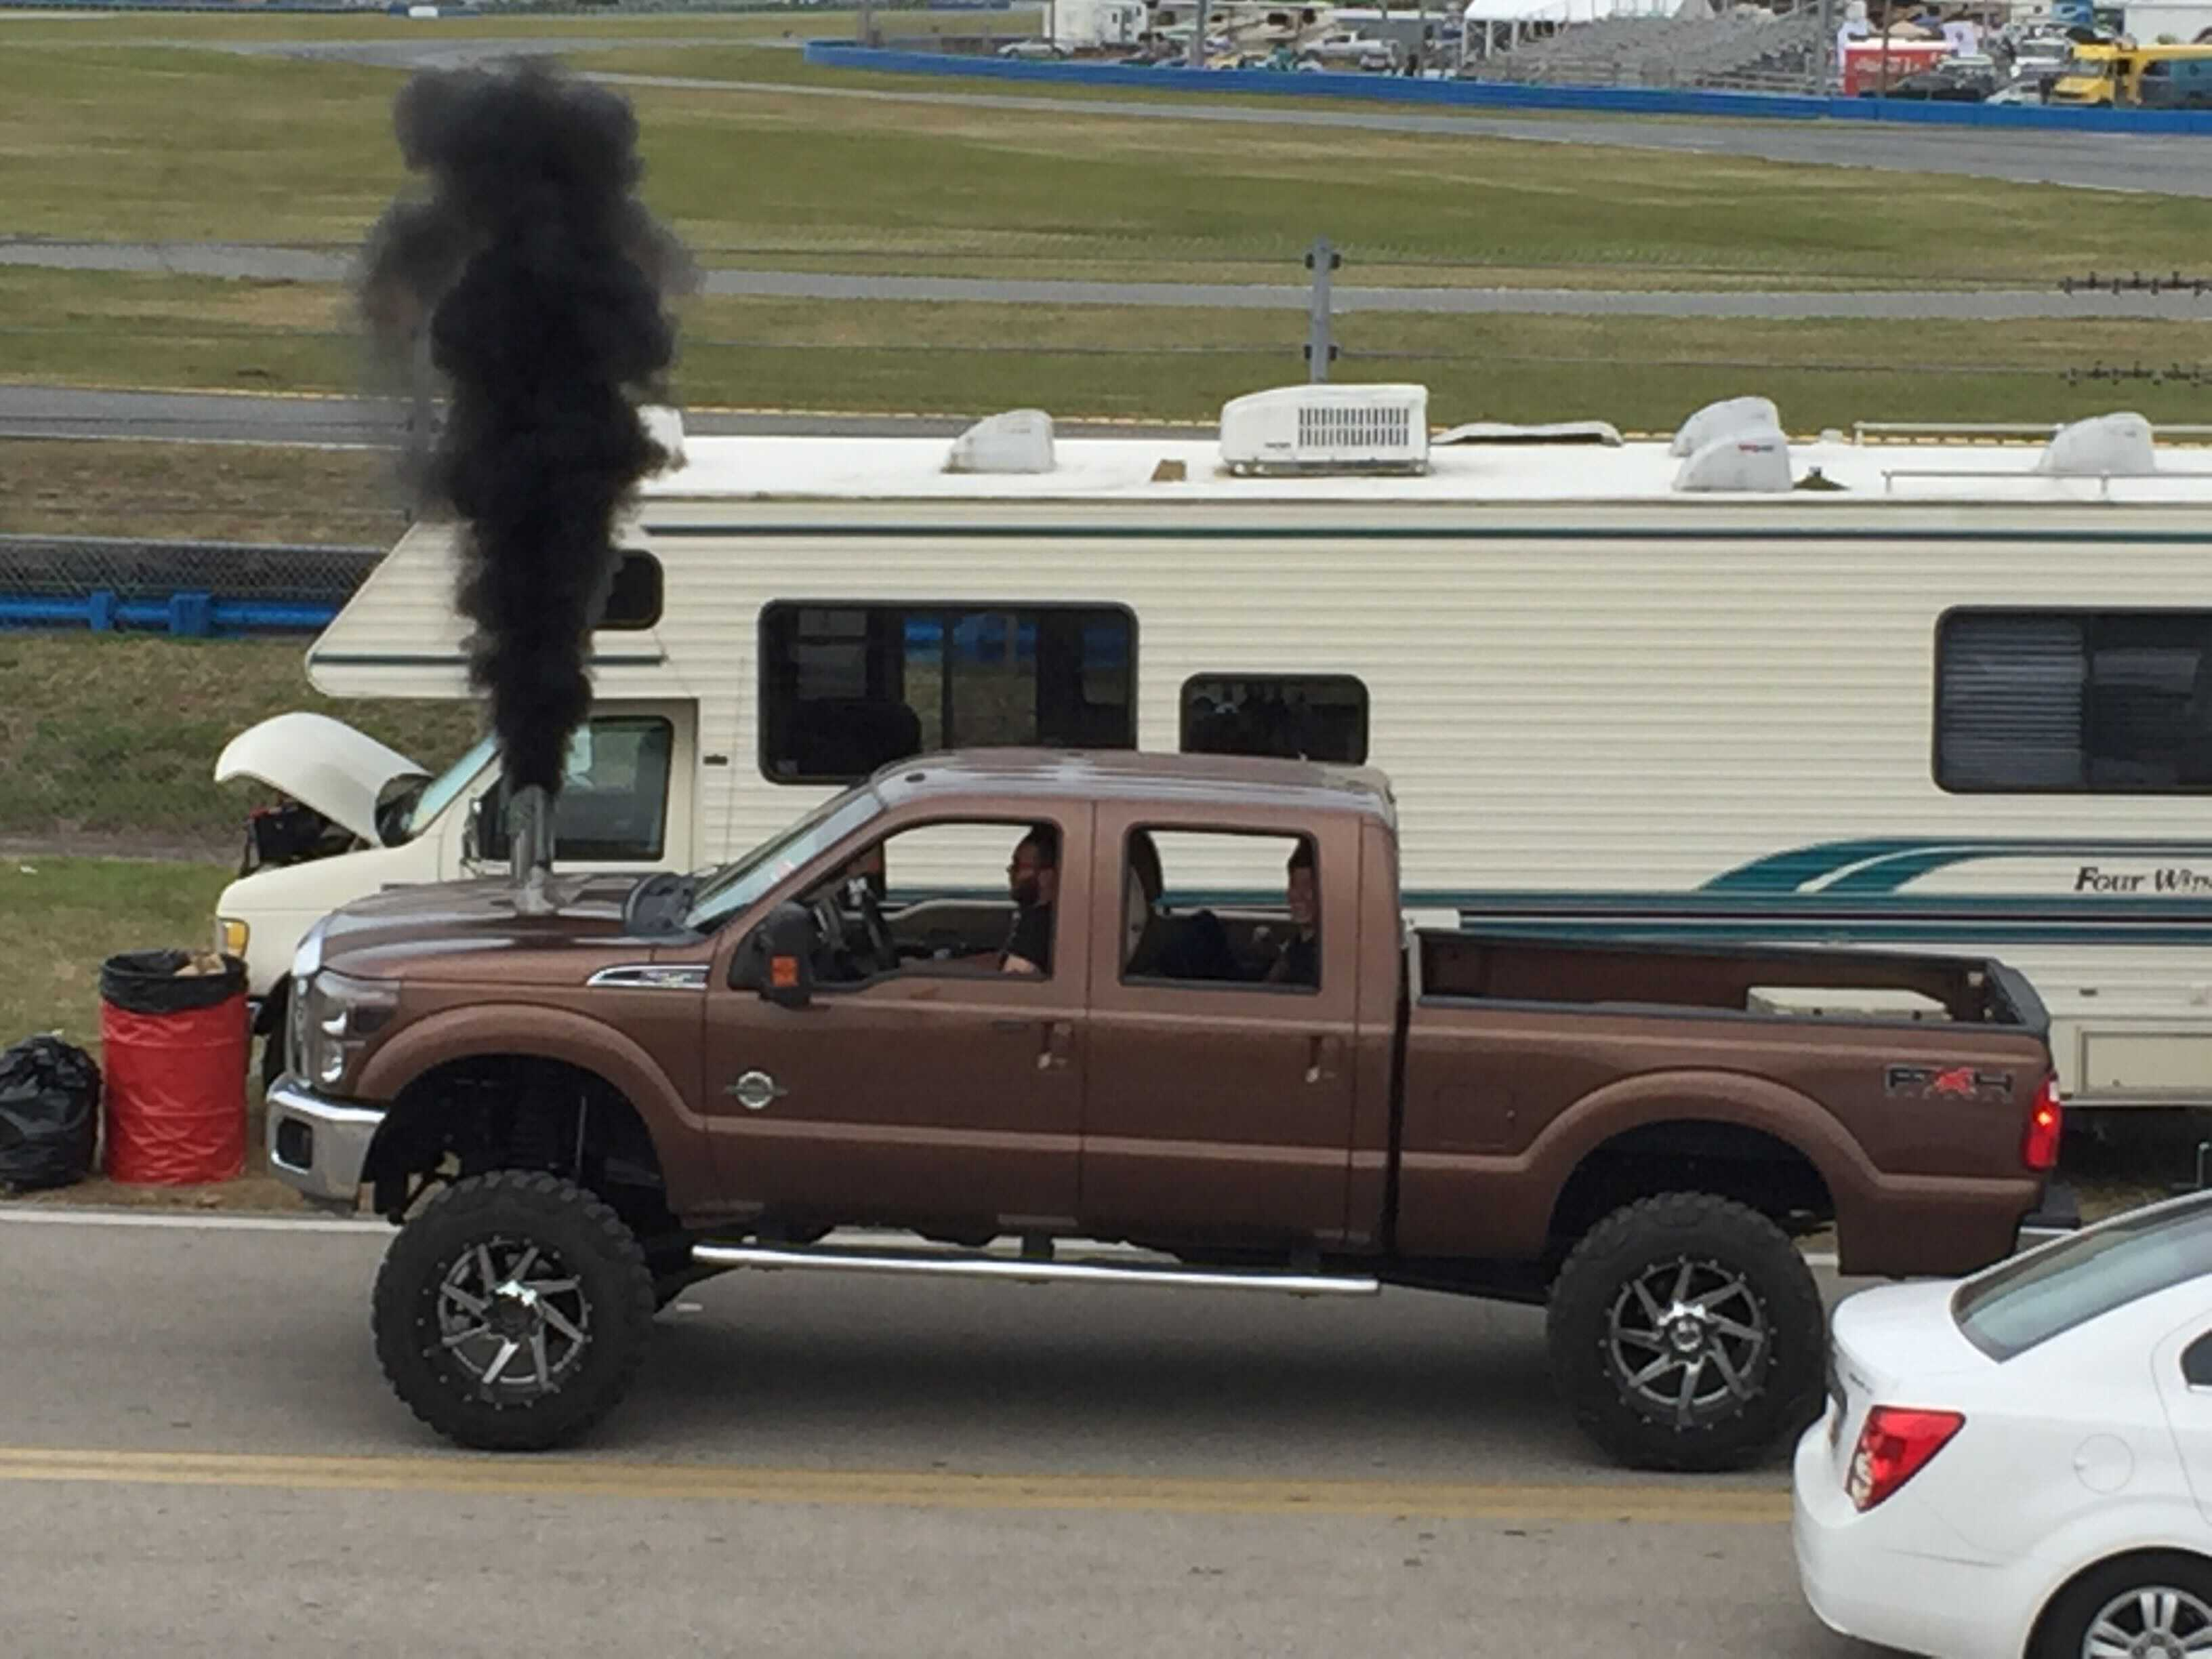 aftermarket truck mods pollute as much